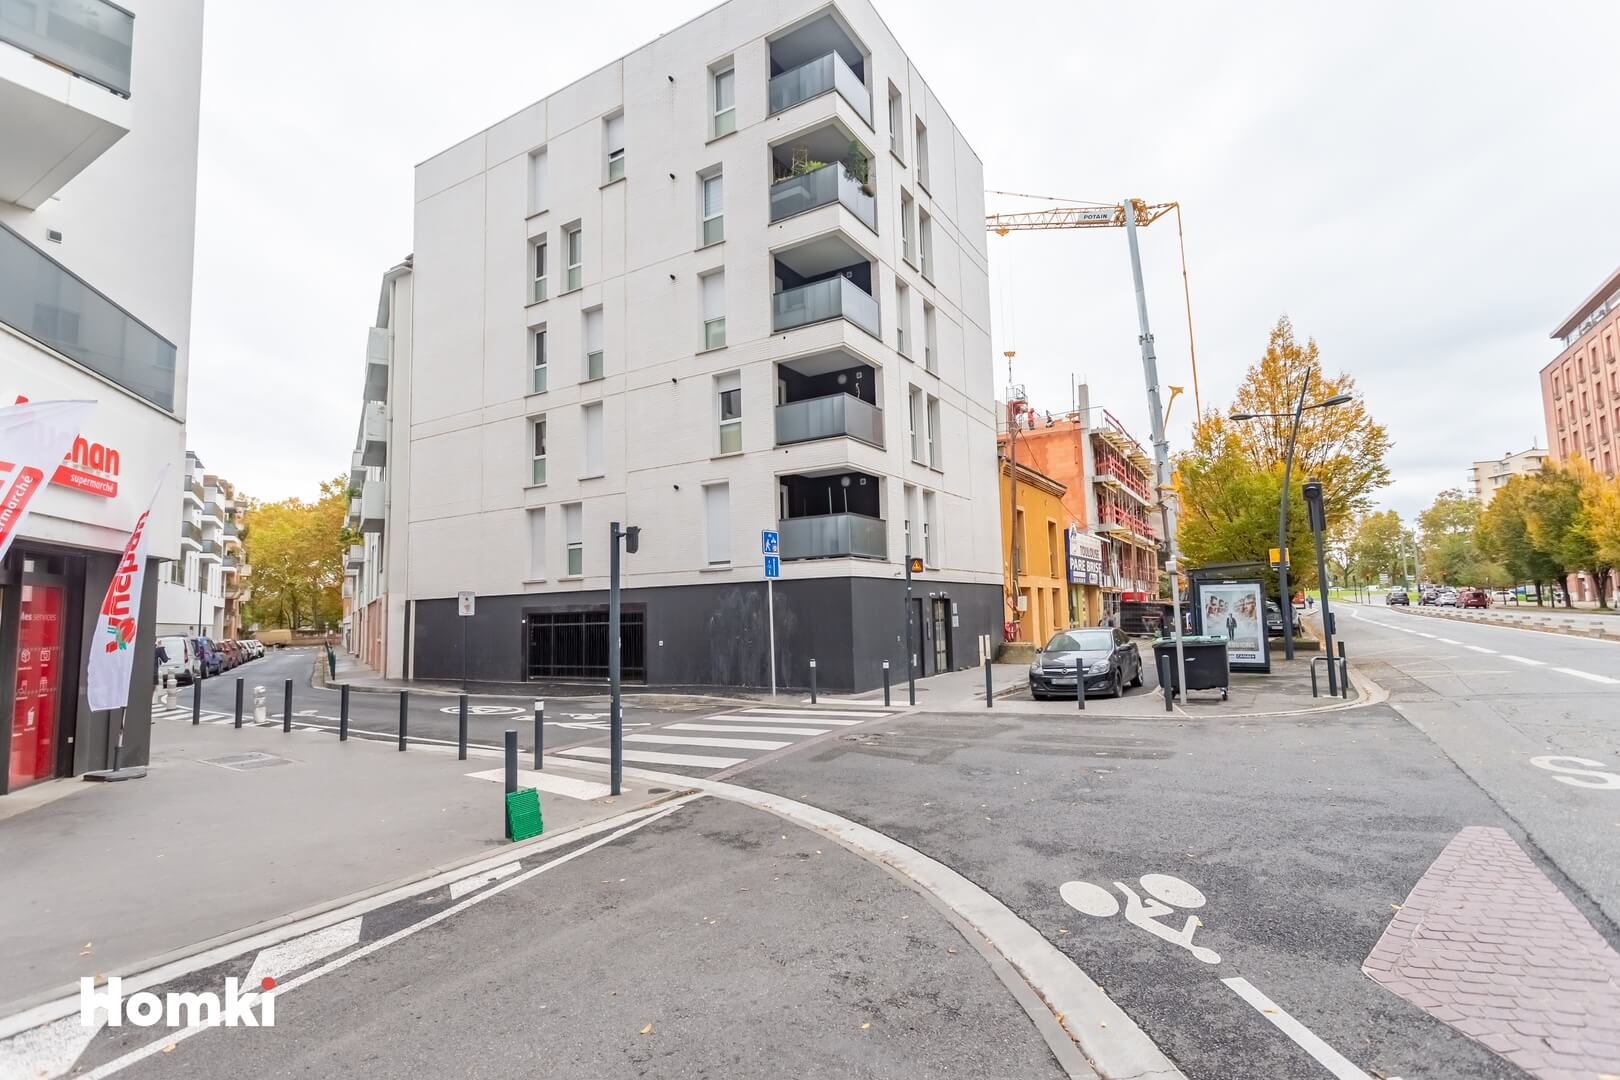 Homki - Vente Appartement  de 42.0 m² à Toulouse 31300